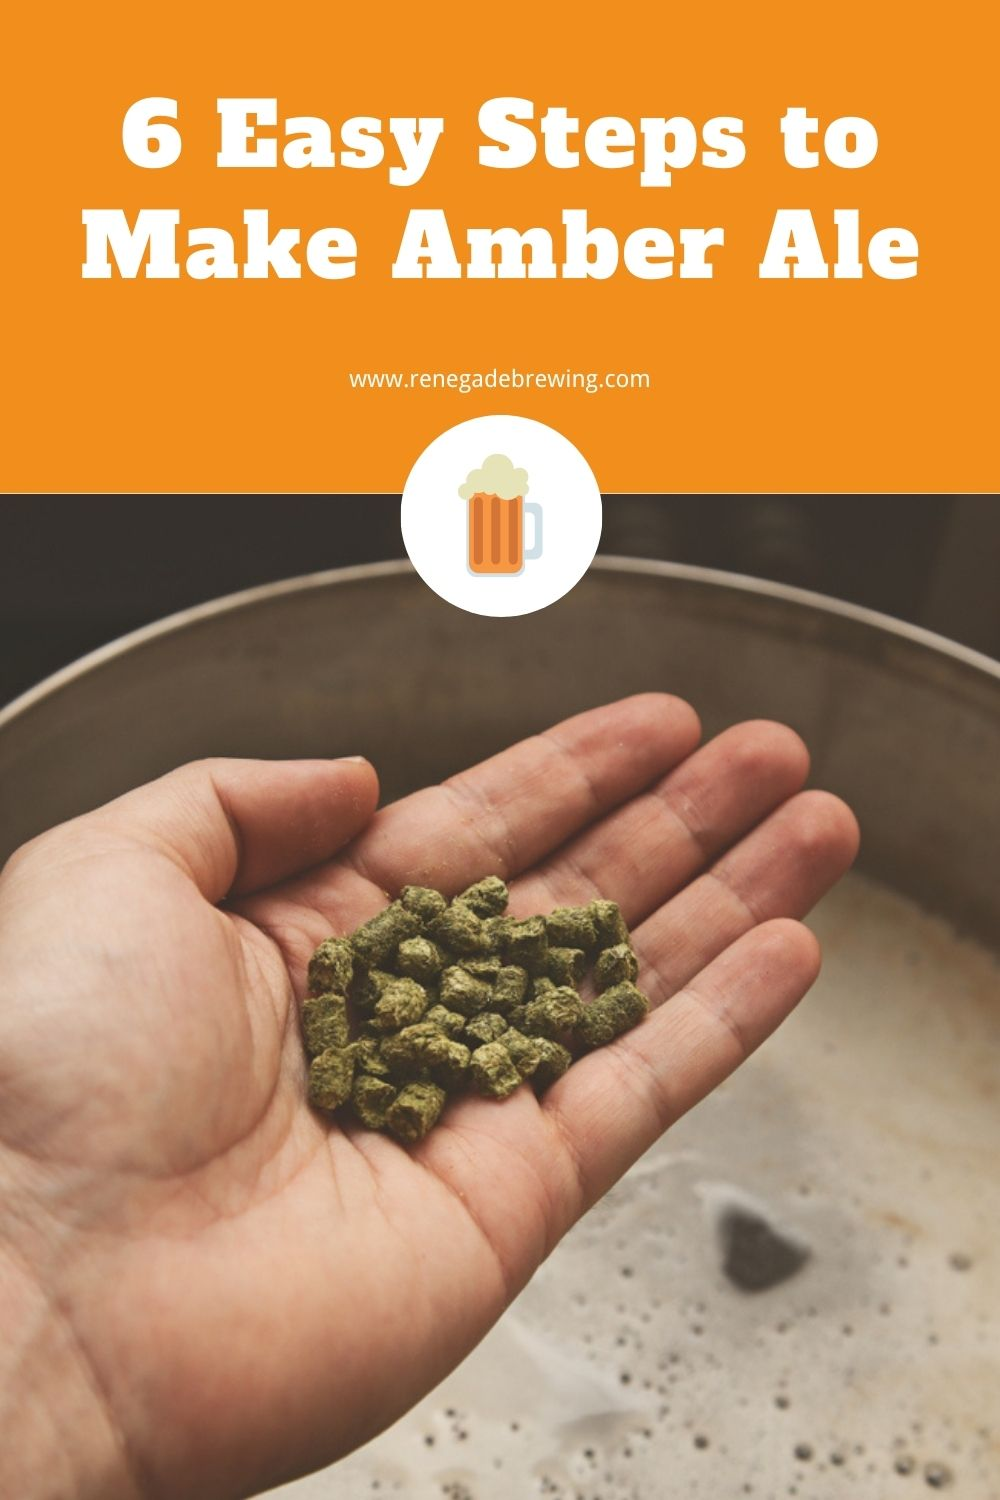 6 Easy Steps to Make Amber Ale 2